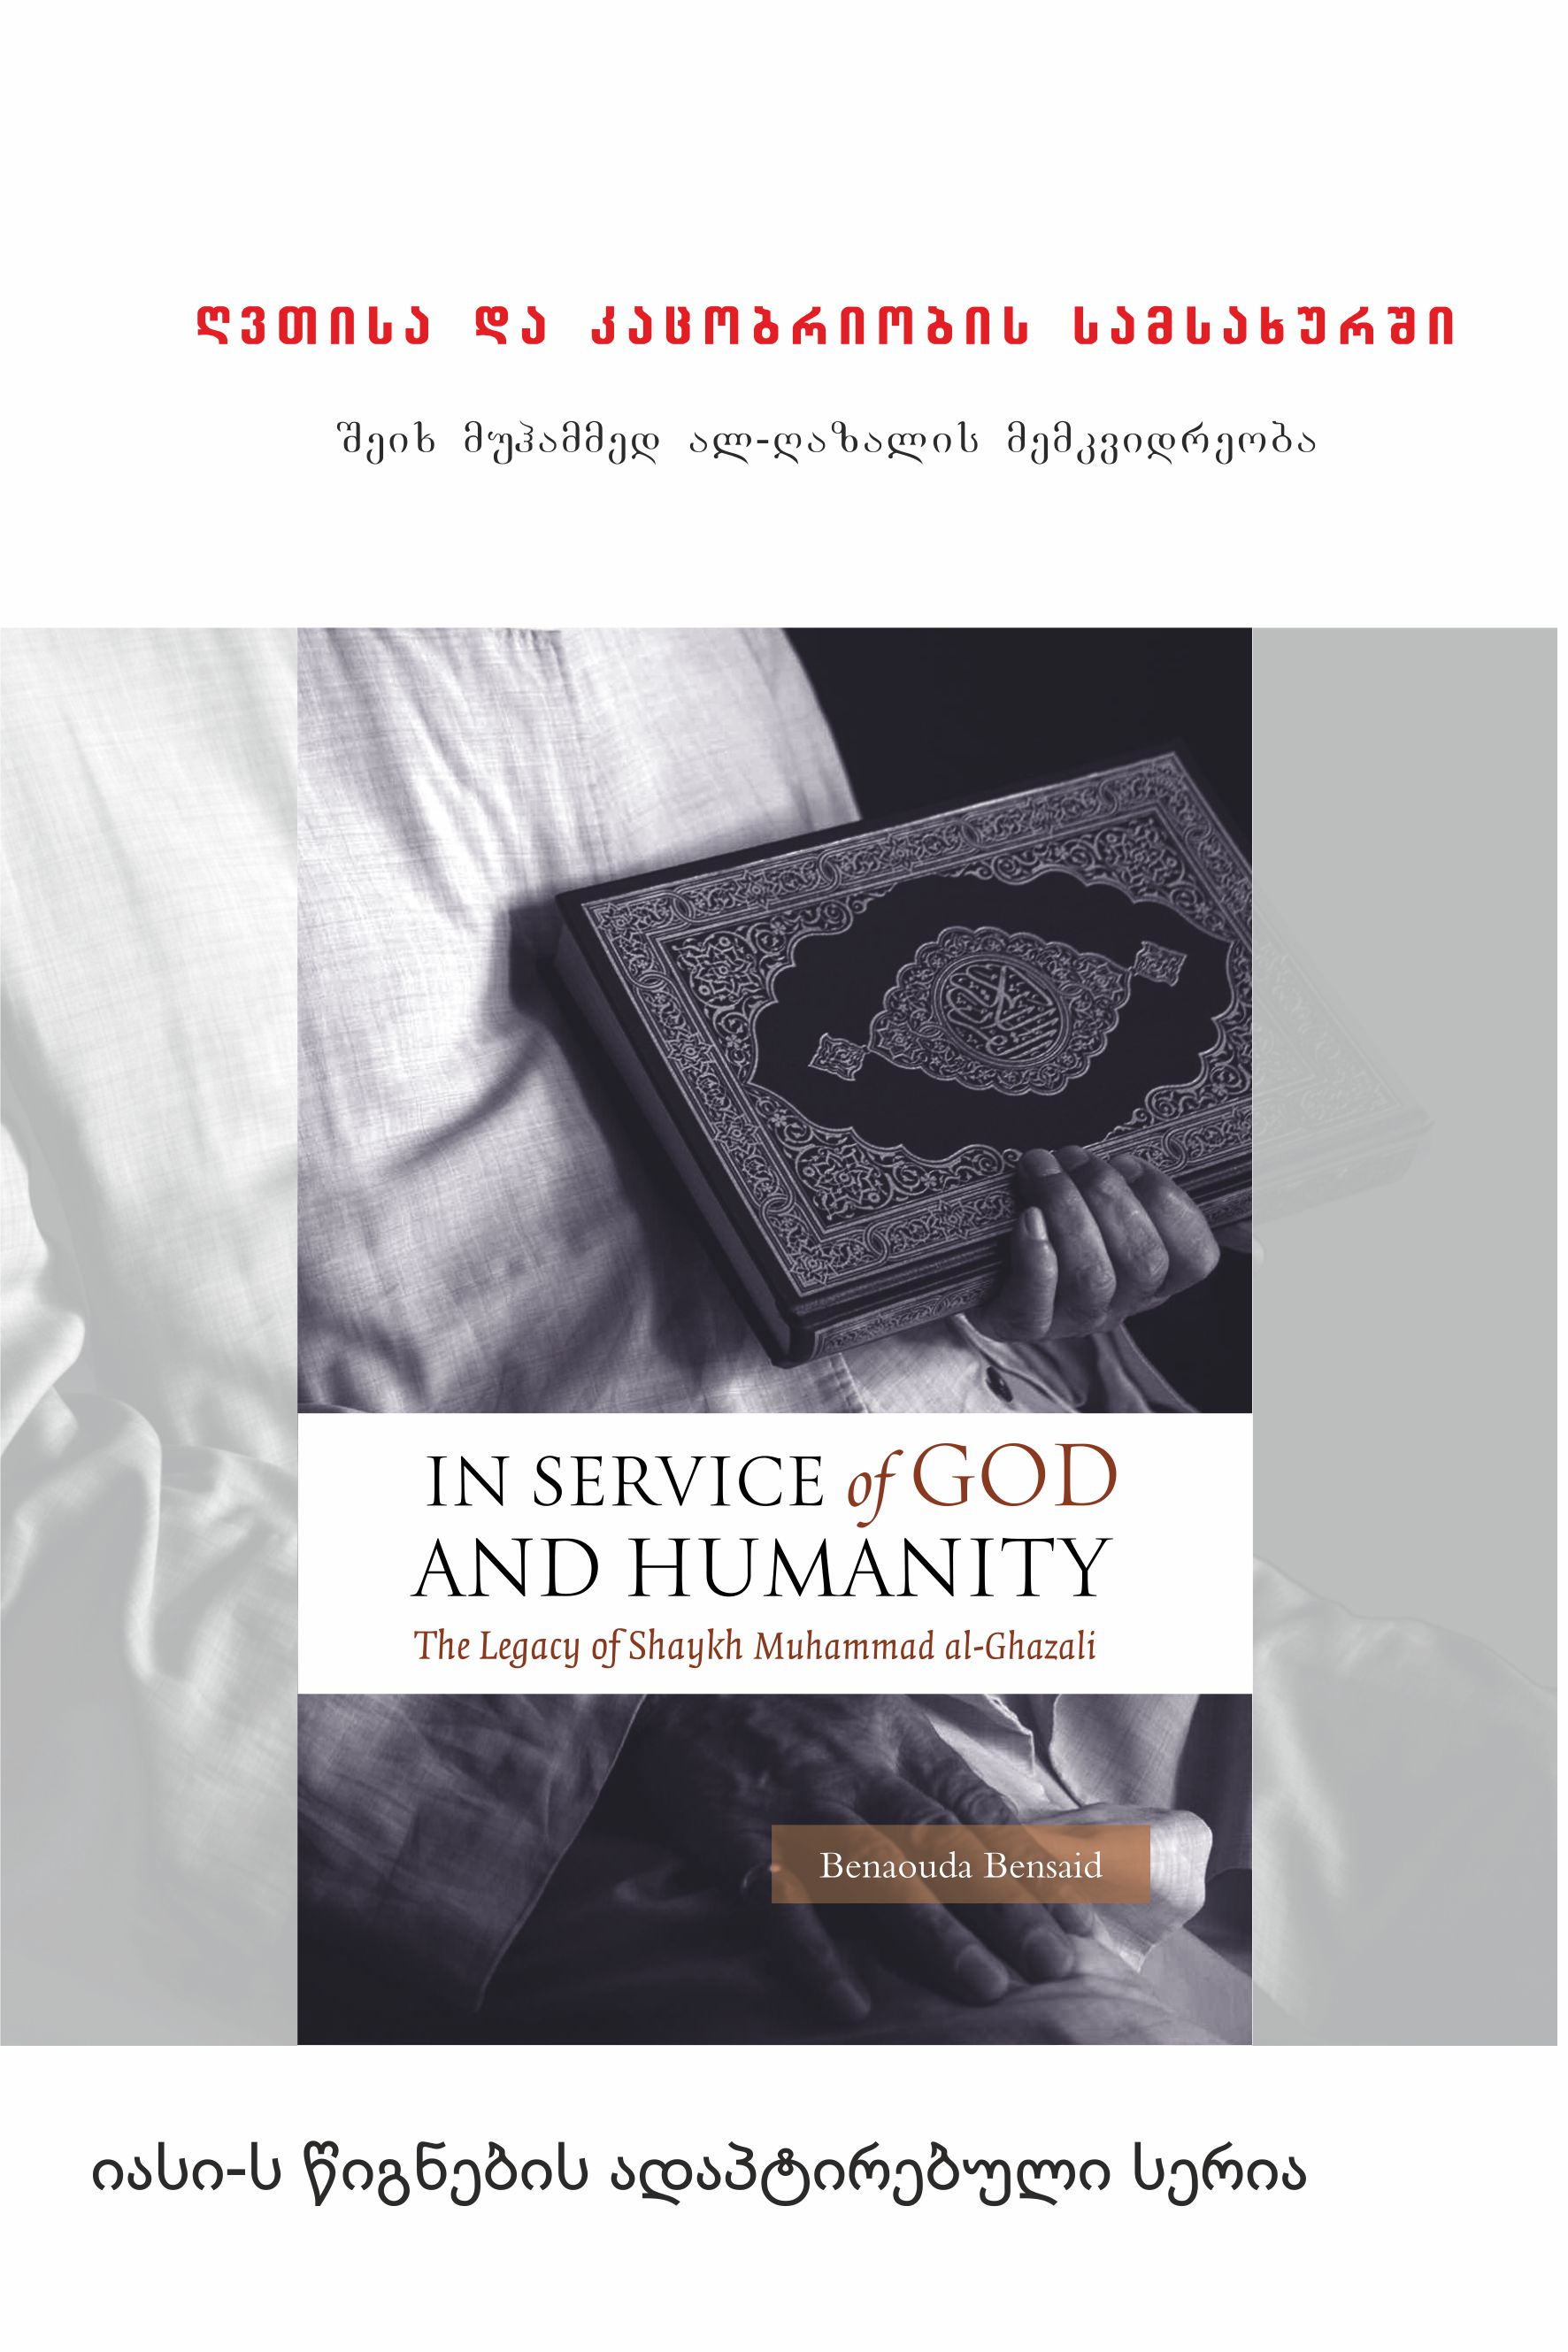 In Service of God and Humanity: The Legacy of Shaykh Muhammad al-Ghazali by Benaouda Bensaid